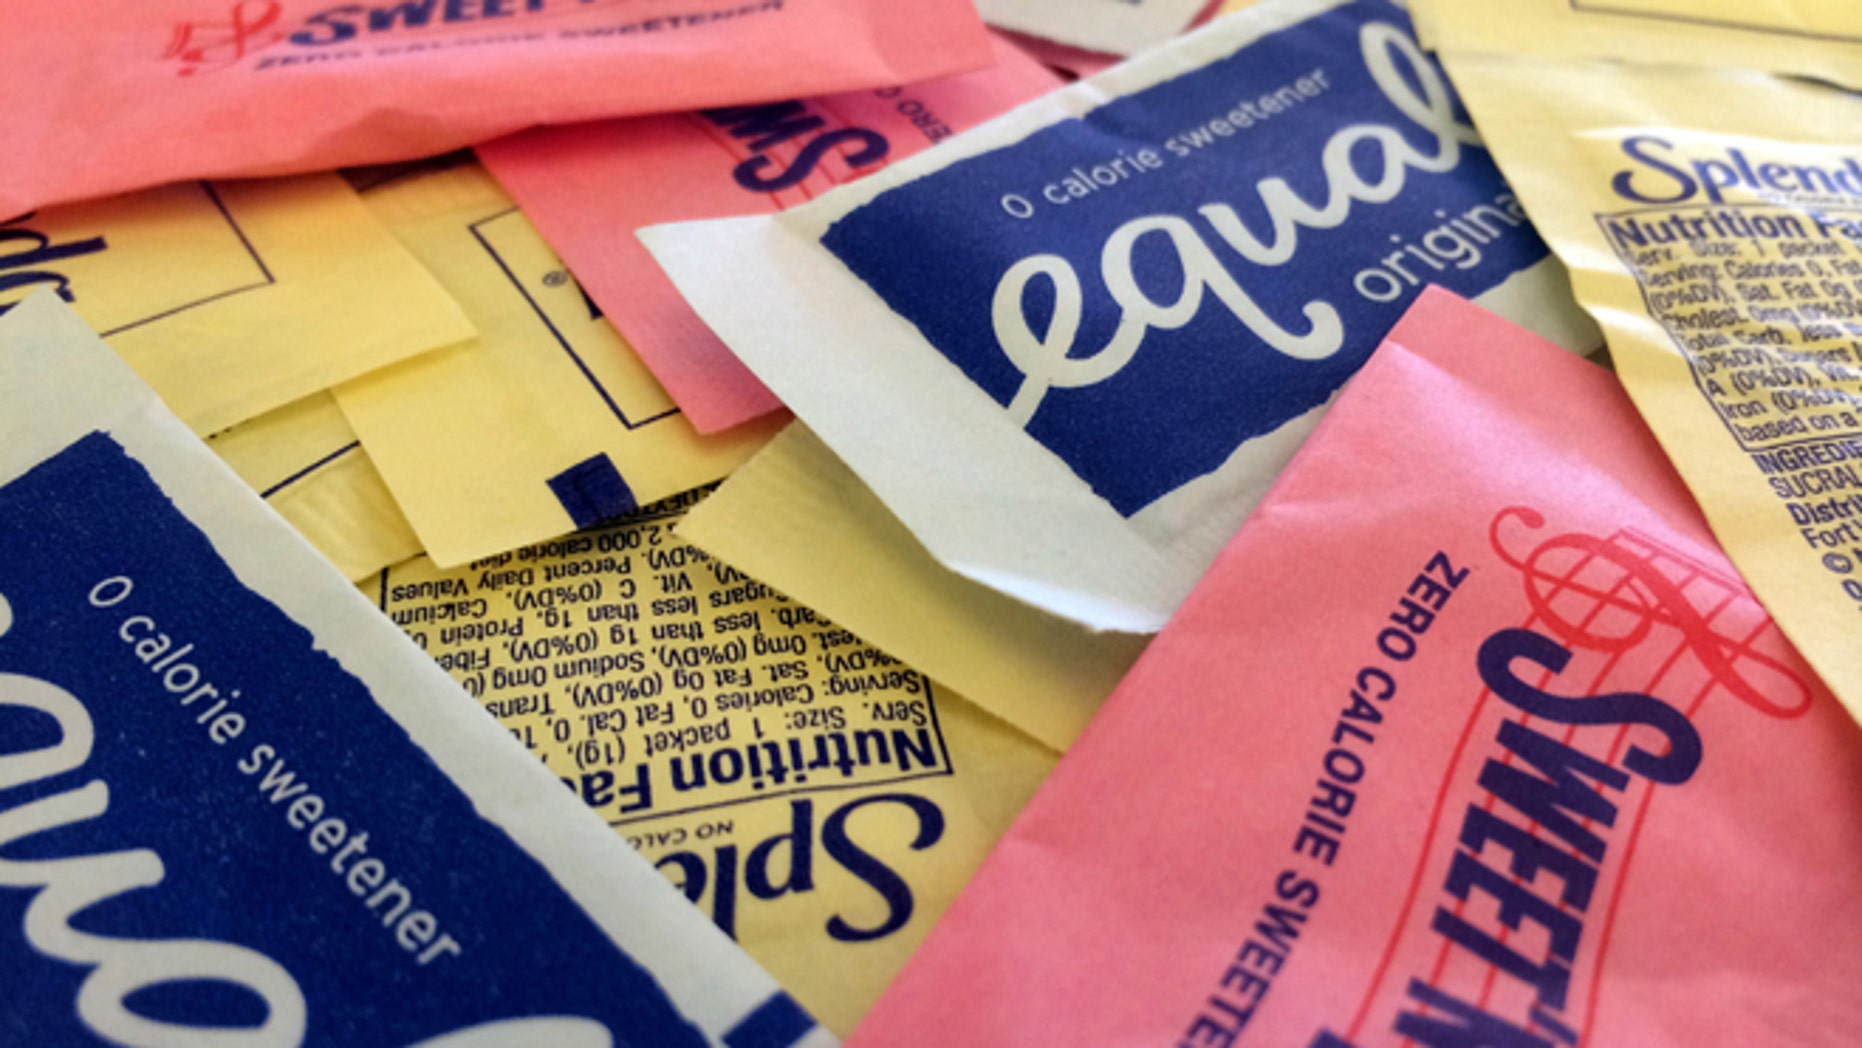 Artificial sweeteners are displayed, on Wednesday, Sept. 17, 2014, in New York. Artificial sweeteners may set the stage for diabetes in some people by hampering the way their bodies handle sugar, according to results of a study released Wednesday by the journal Nature. (AP Photo/Jenny Kane)